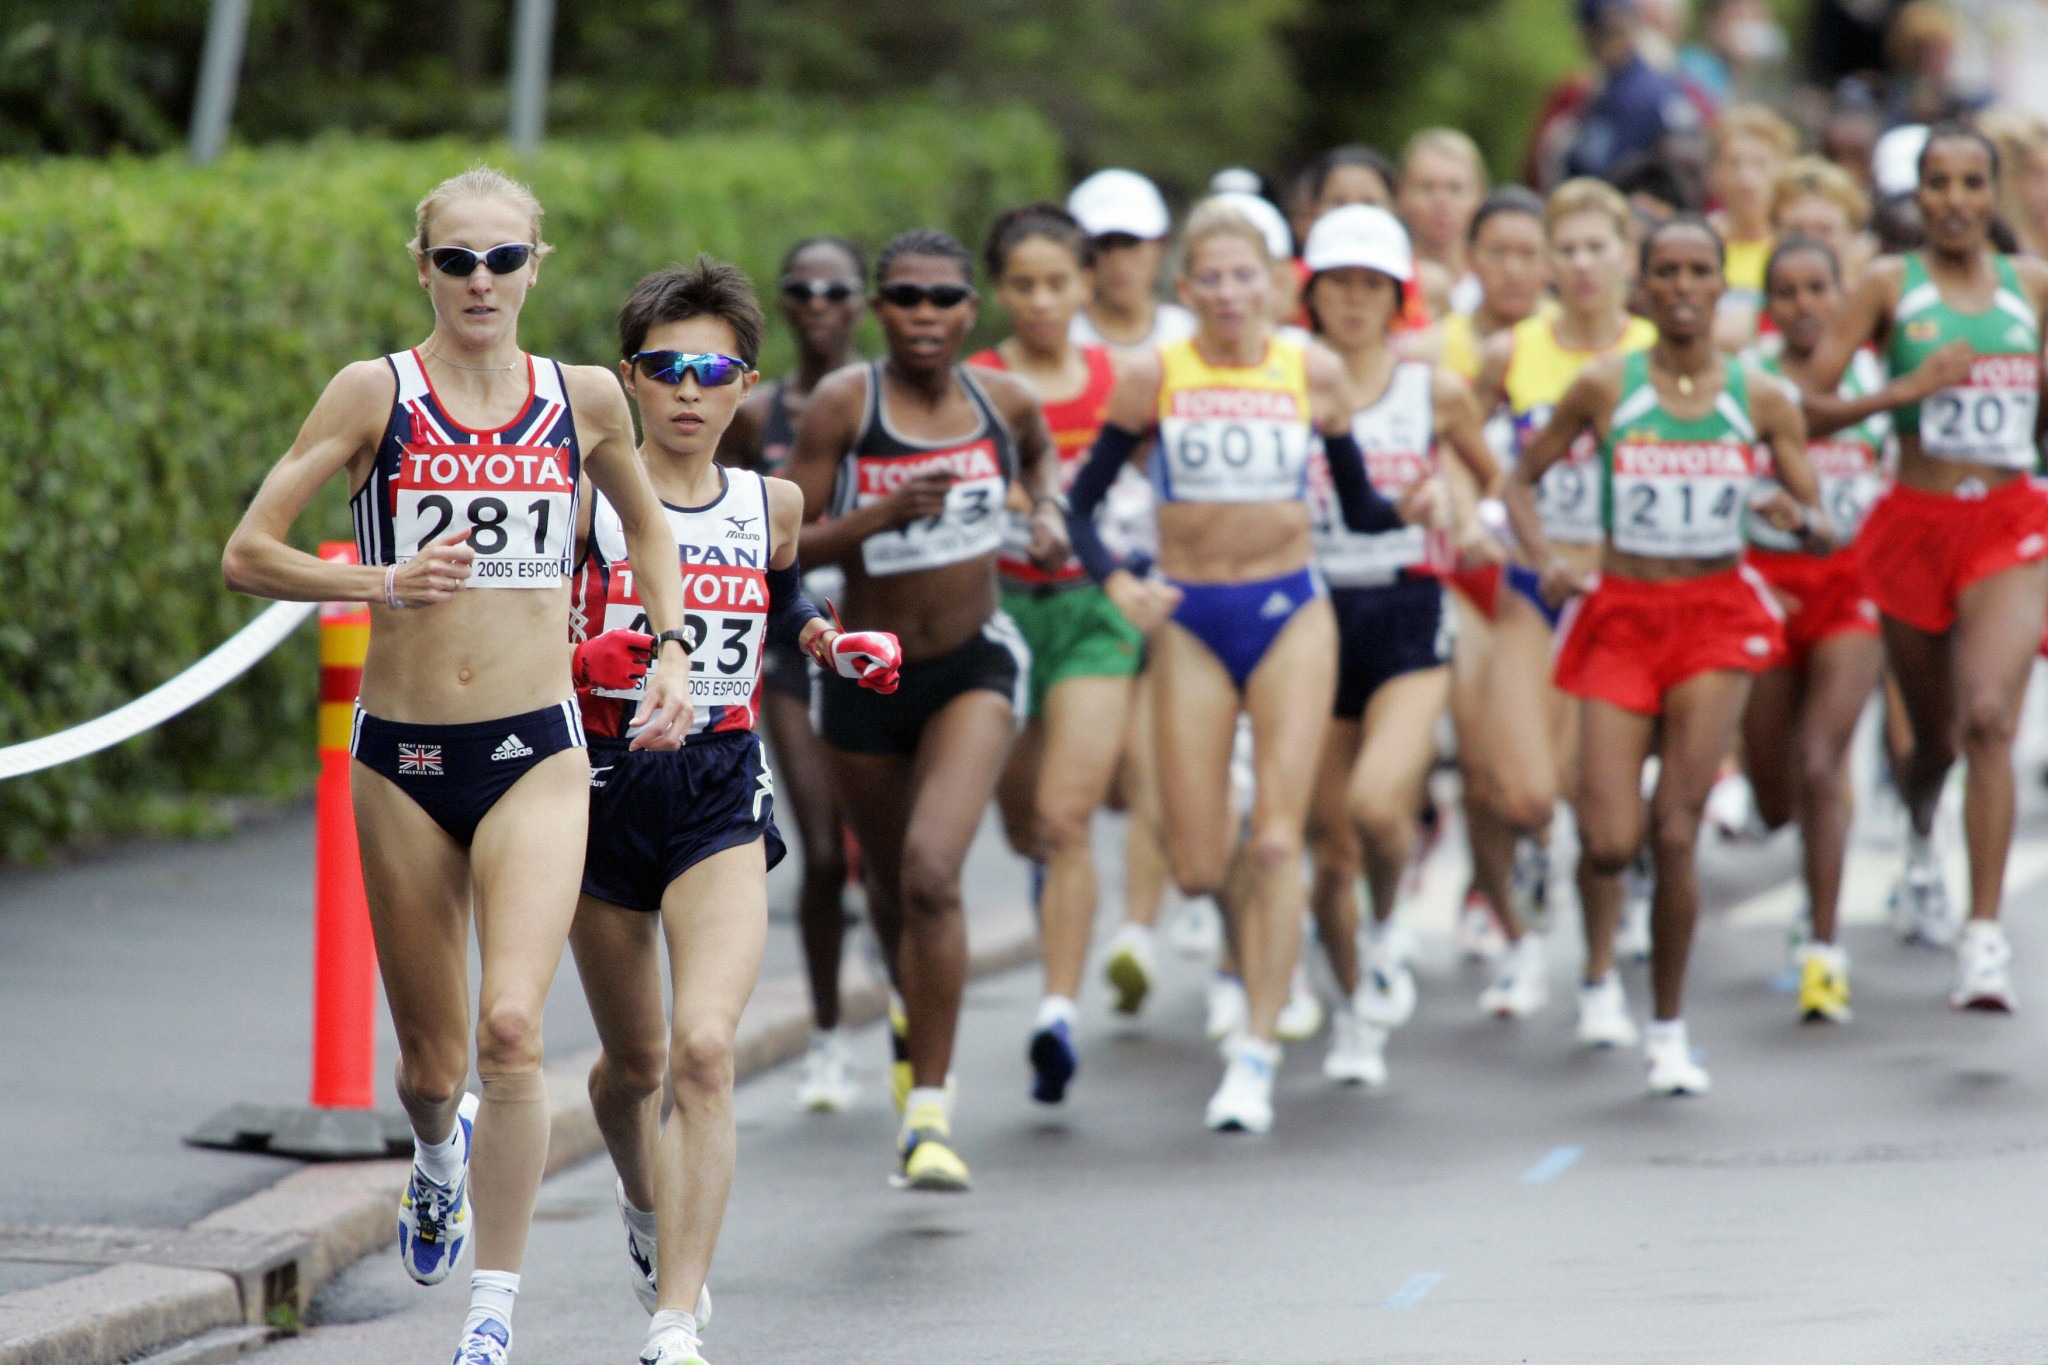 The IAAF World Championships women's marathon course record of 2:20:57 was set in 2005 by Britain's Paula Radcliffe in Helsinki when it was wet and cool in conditions ideal for running ©Getty Images